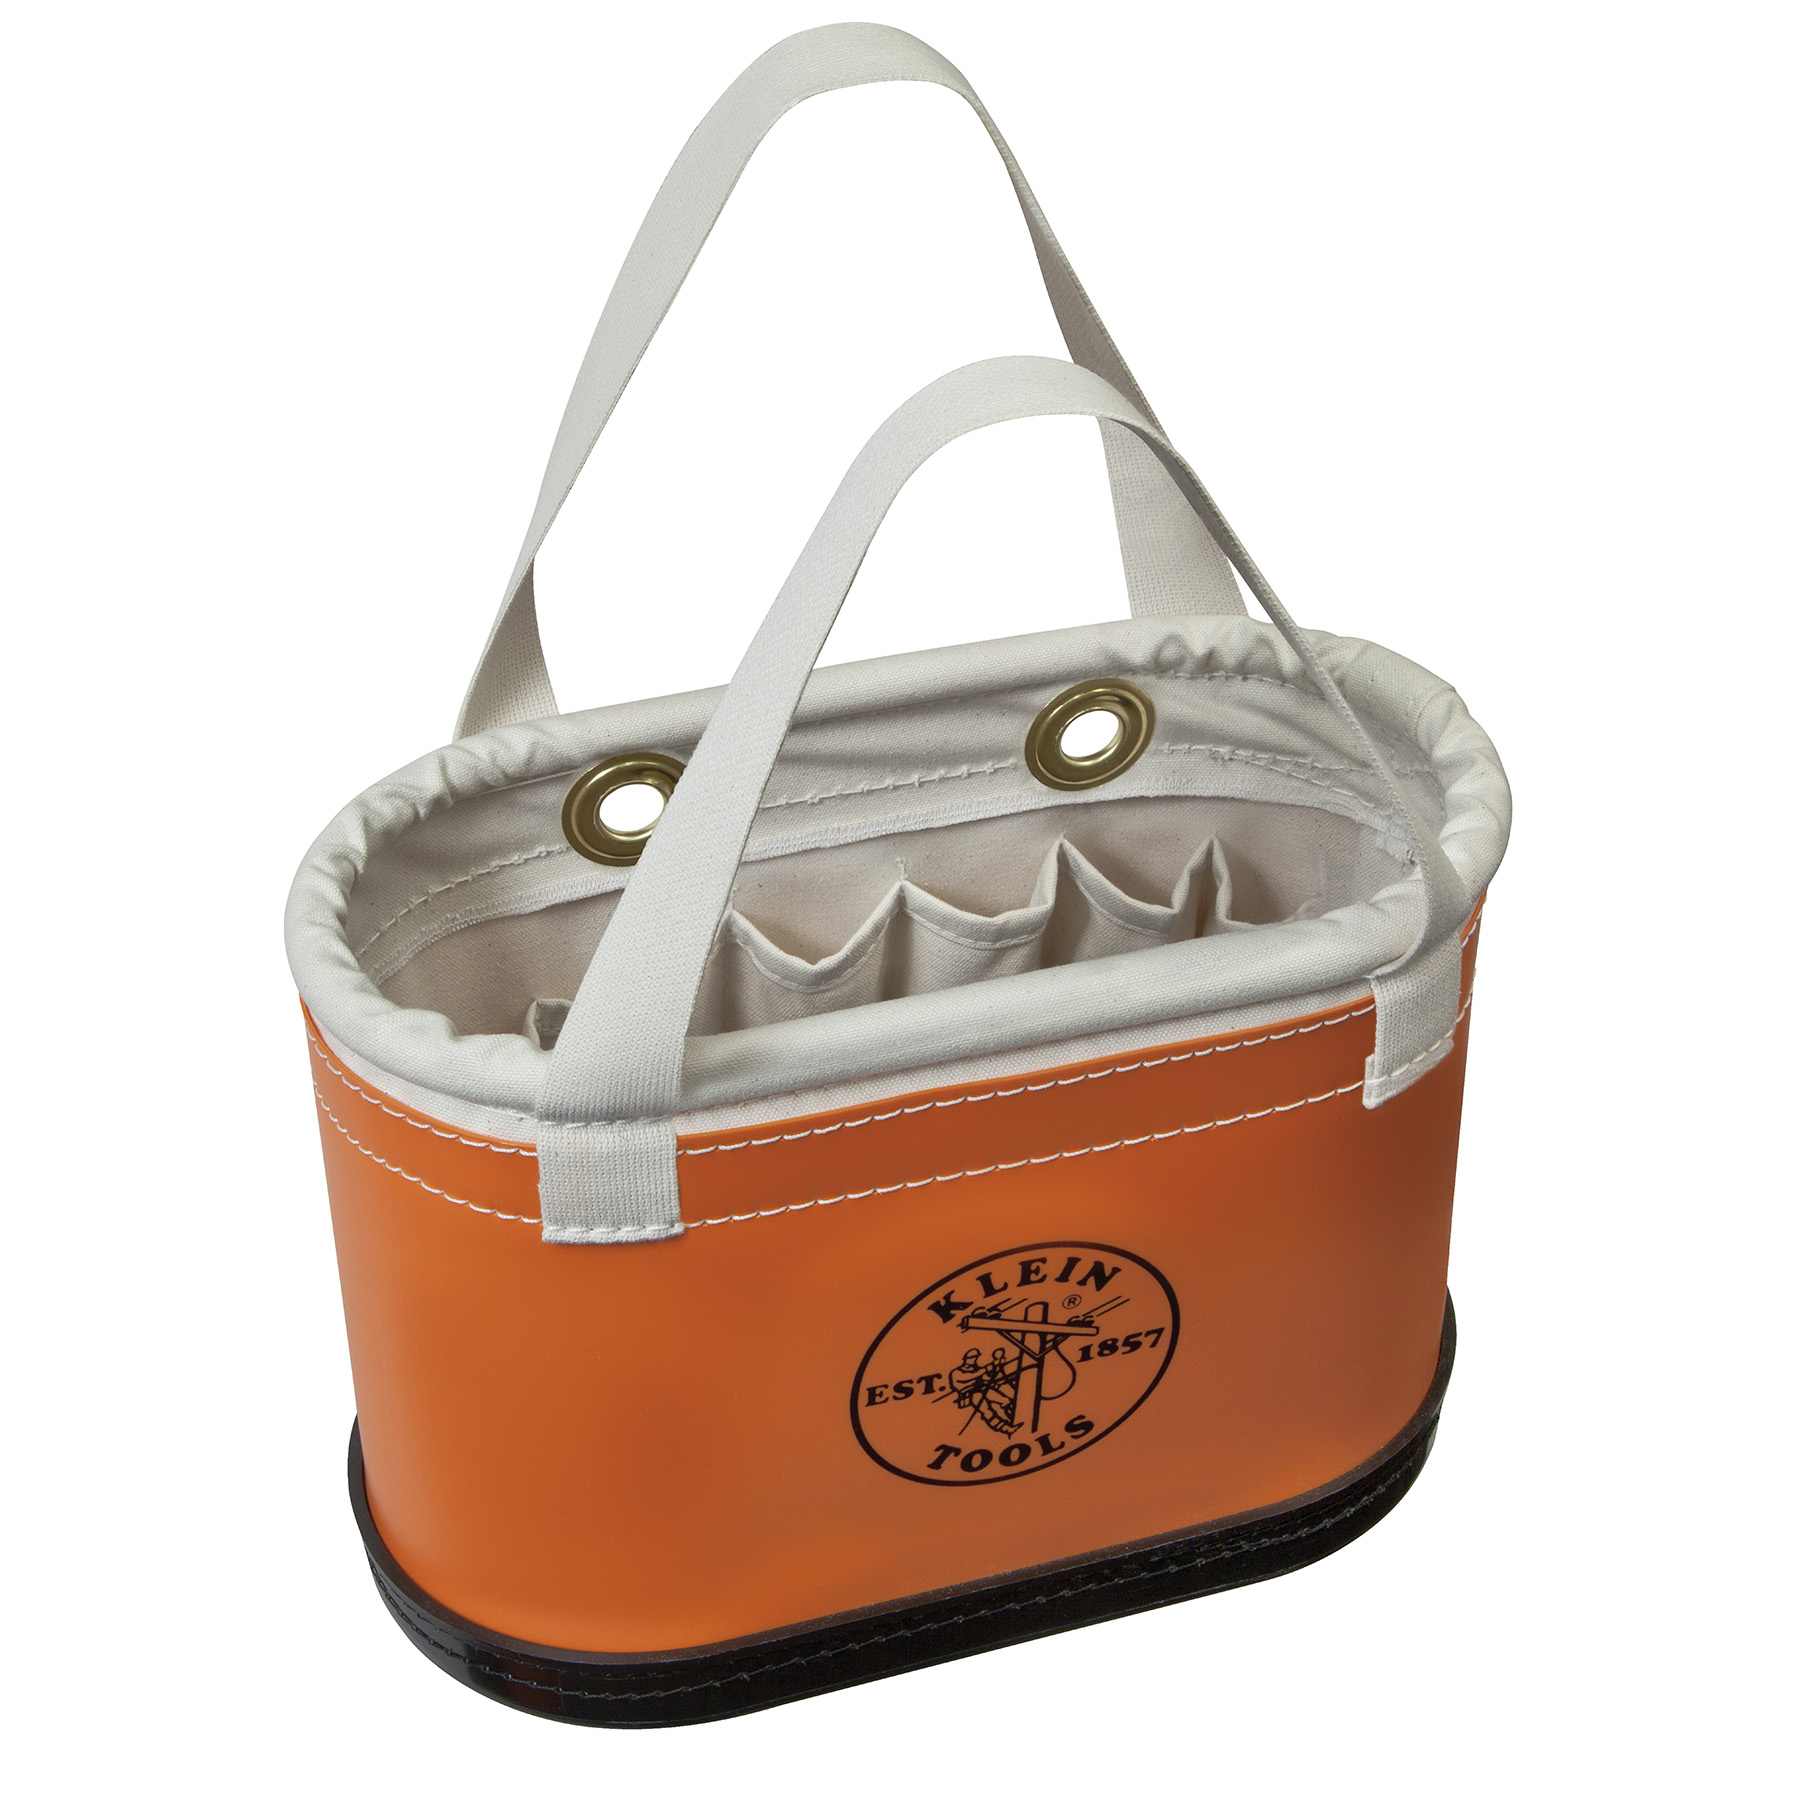 Klein Orange Hard-Body Oval Buckets